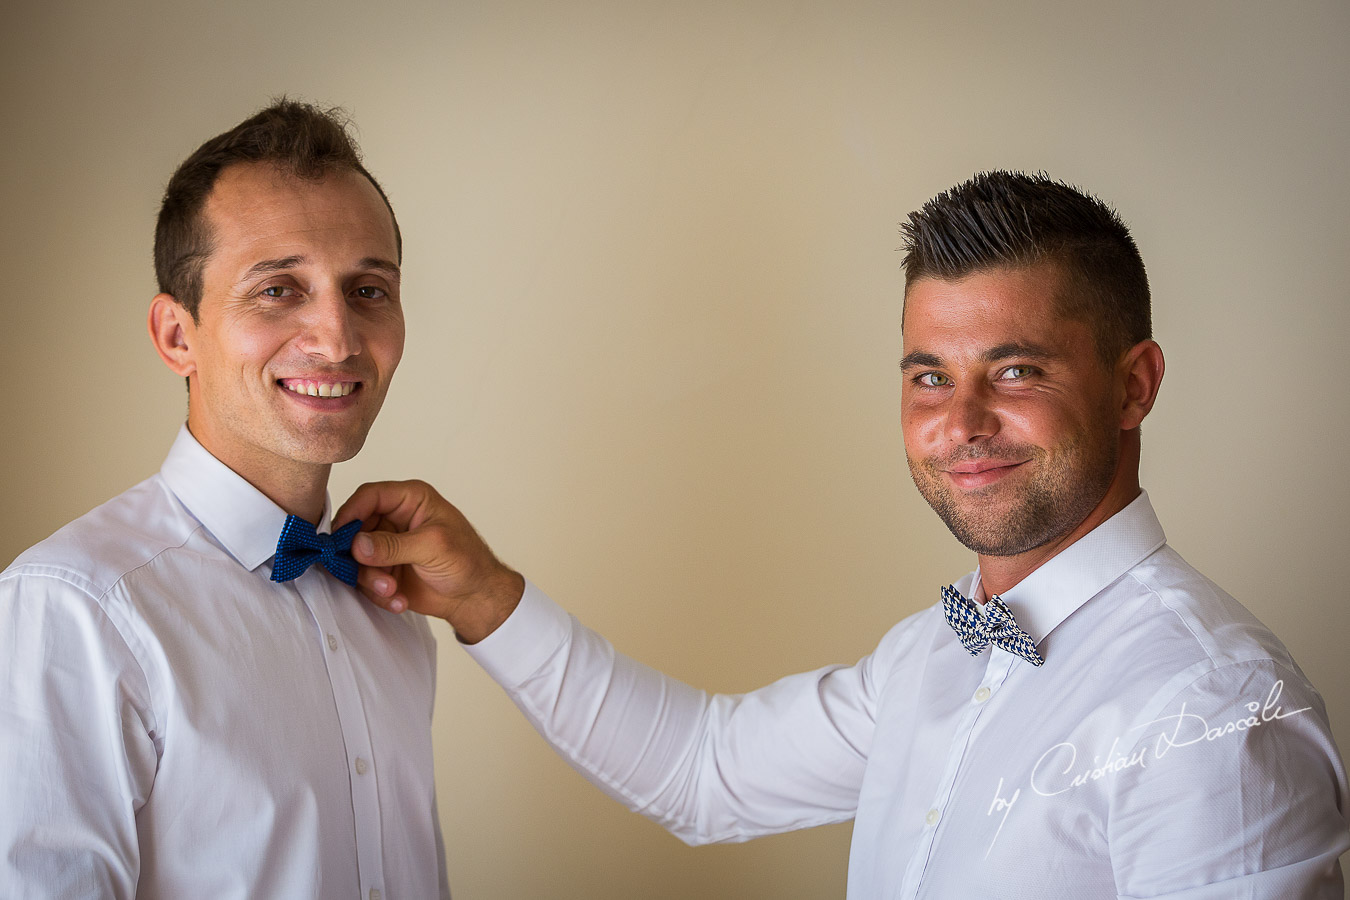 Groom and best man getting ready at Elias Beach Hotel in Limassol